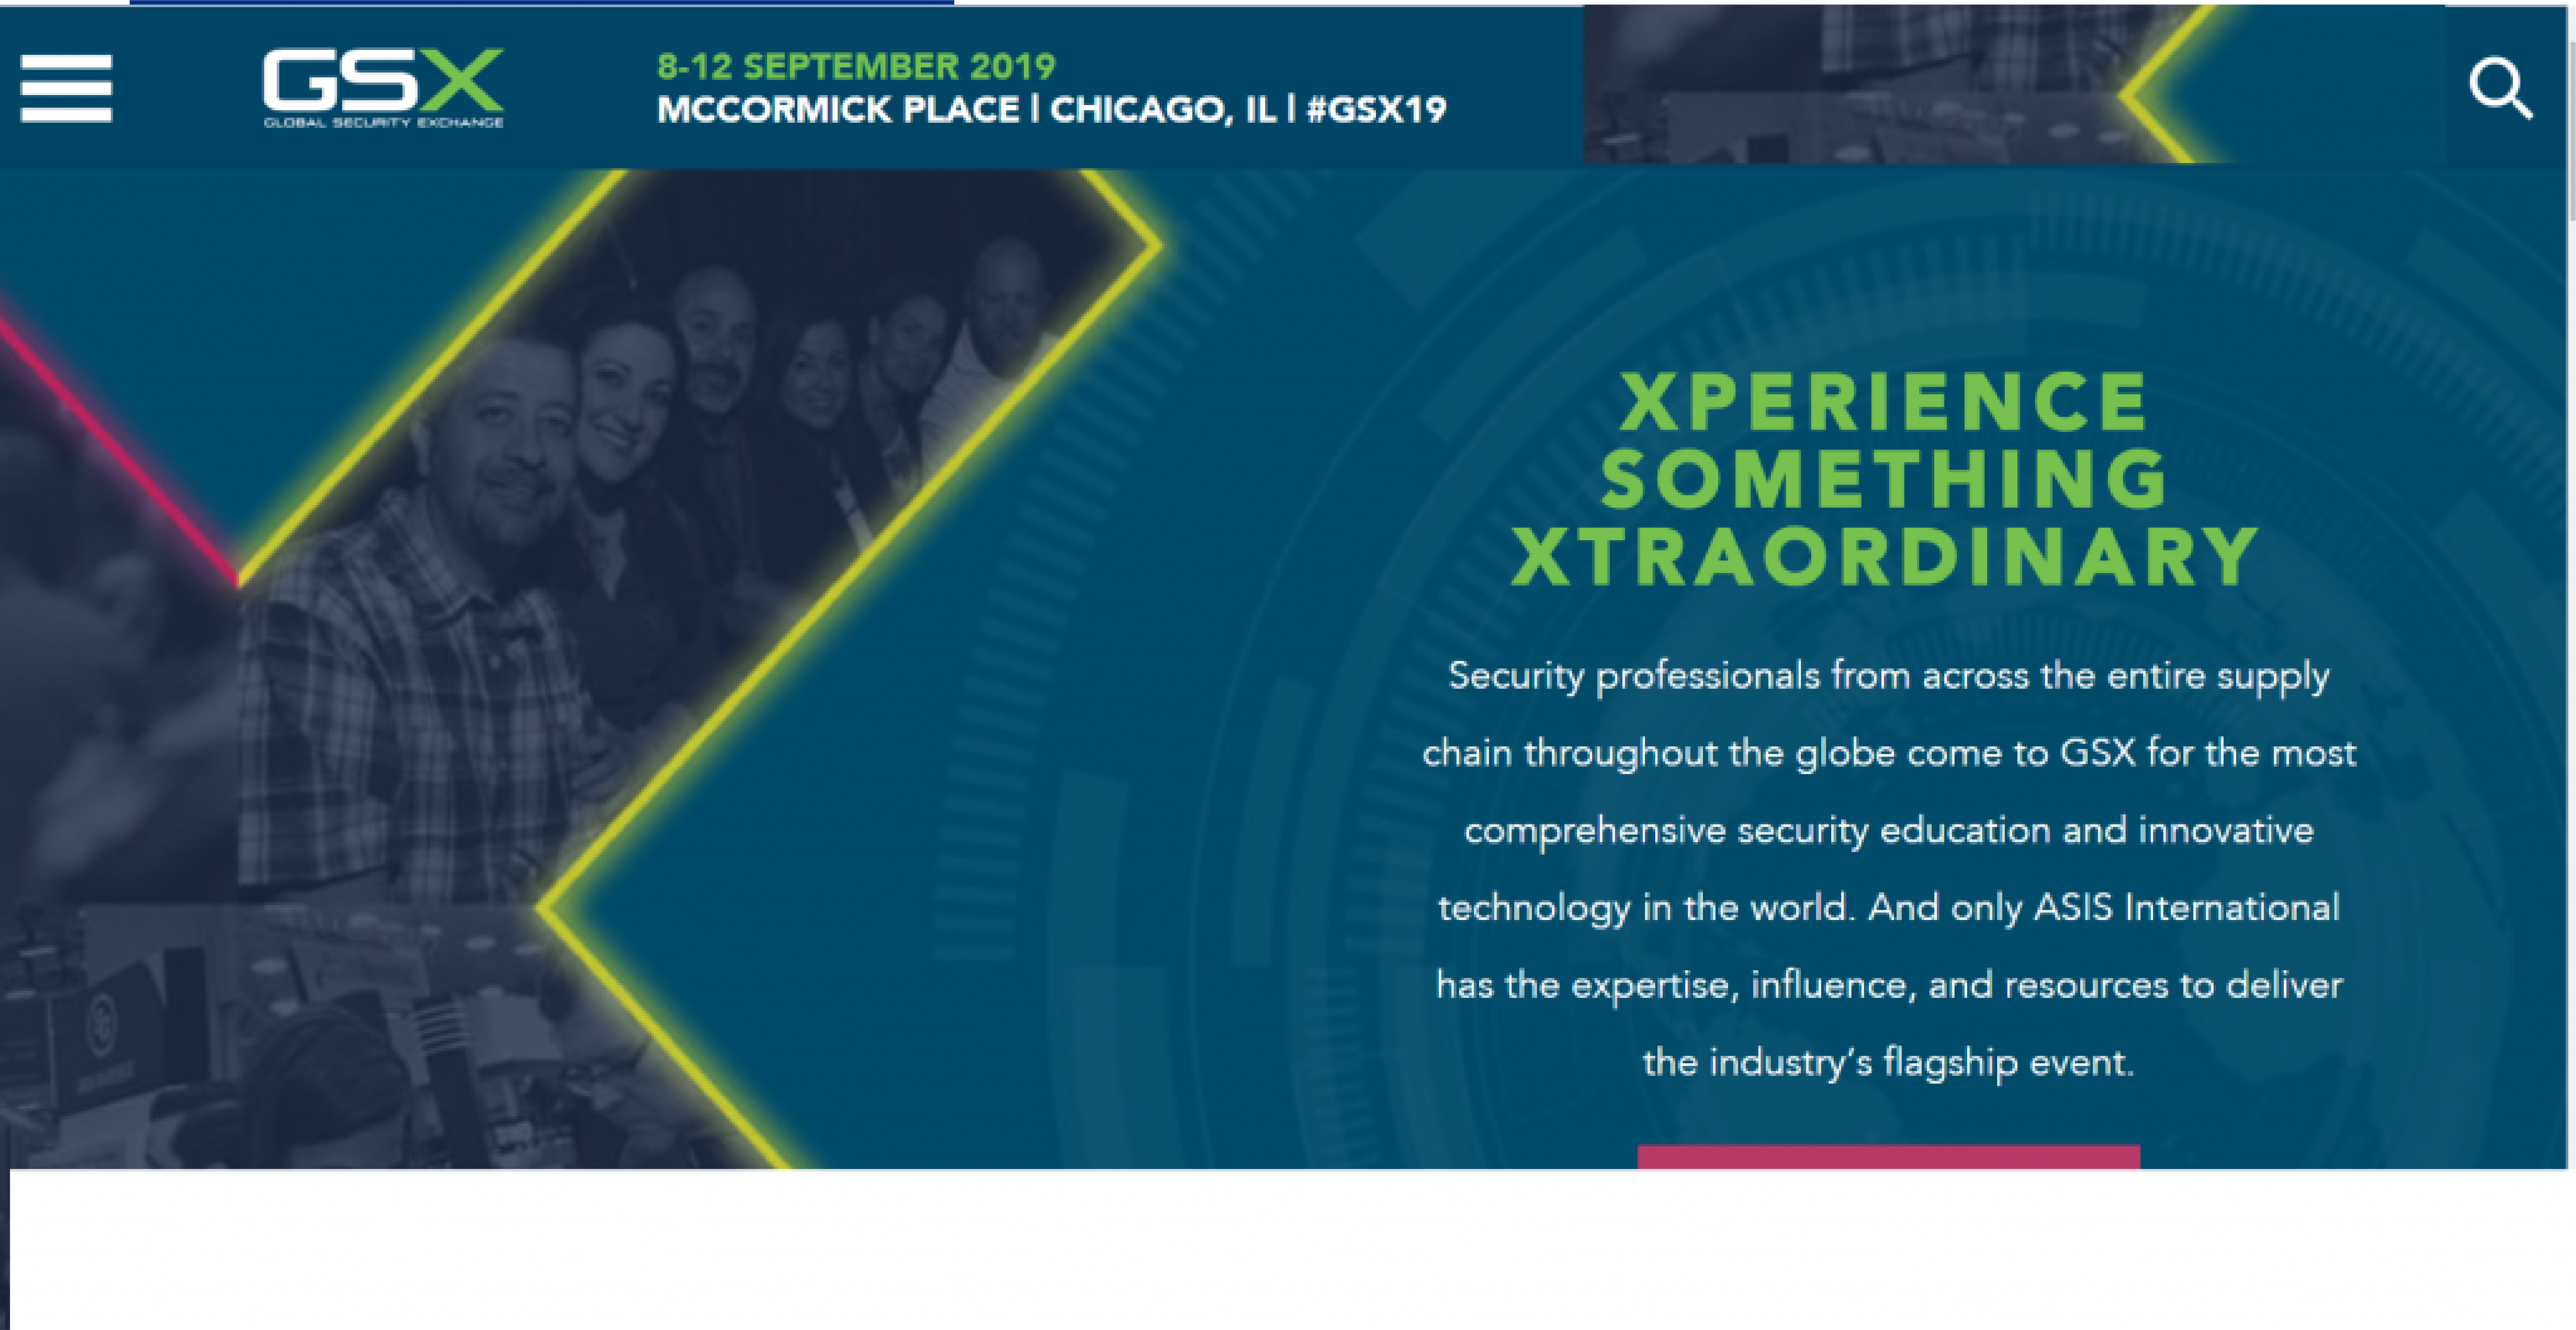 Global Security Exchange (GSX) 2019